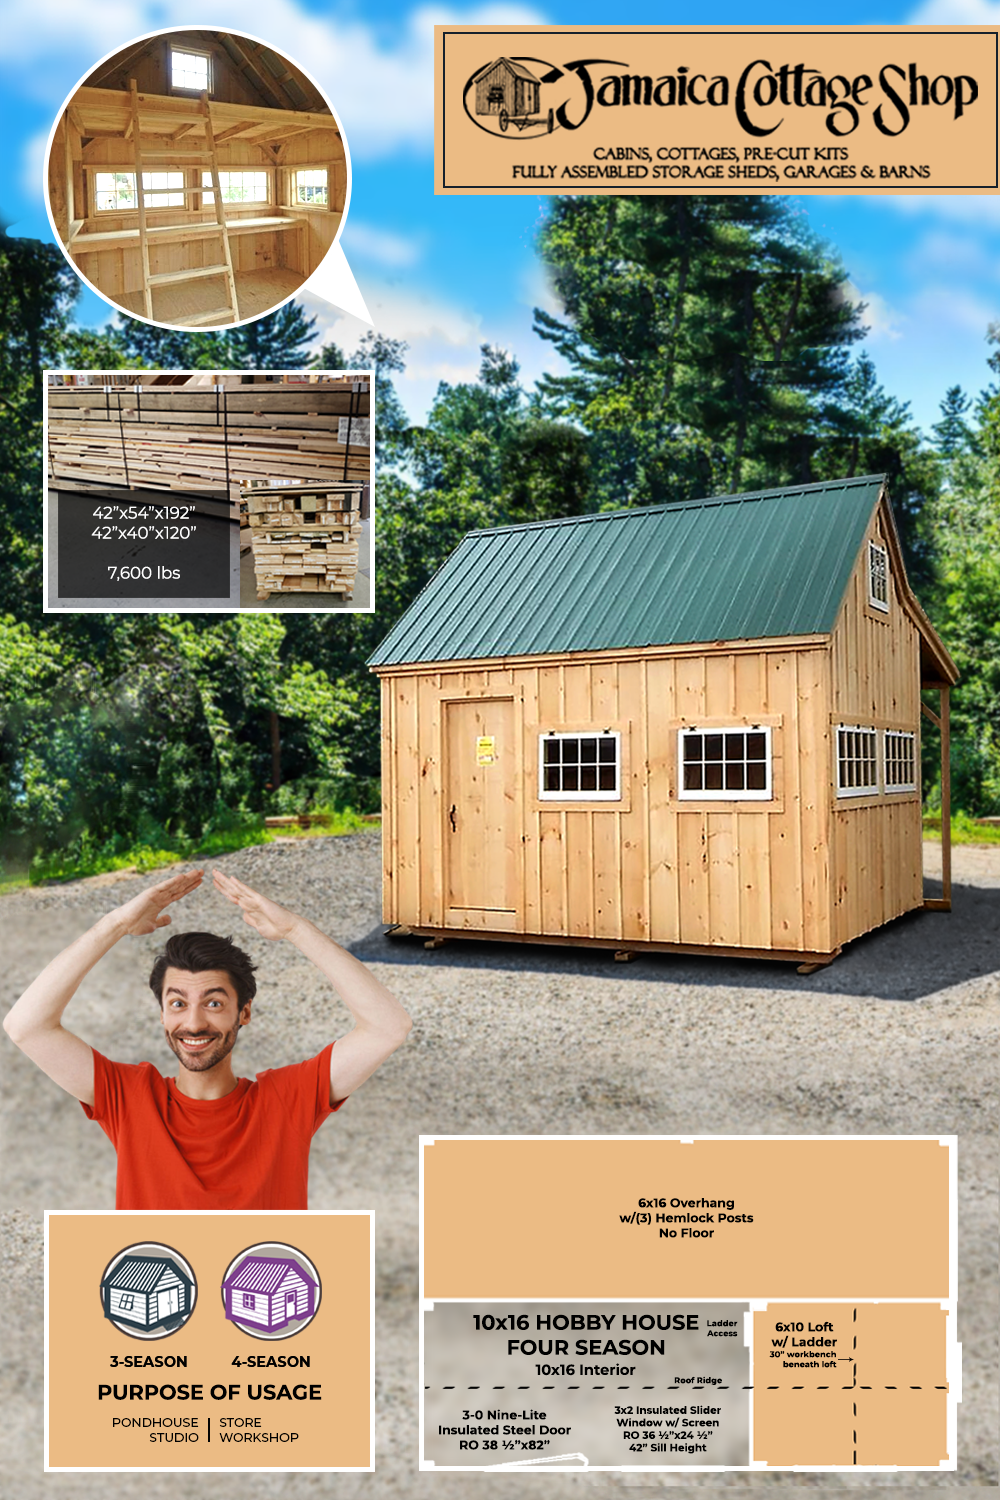 10 X 16 Hobby House Perfect For A Quick Escape For Your Passionate Hobbies In 2020 Hobby House Shed Basic Carpentry Tools